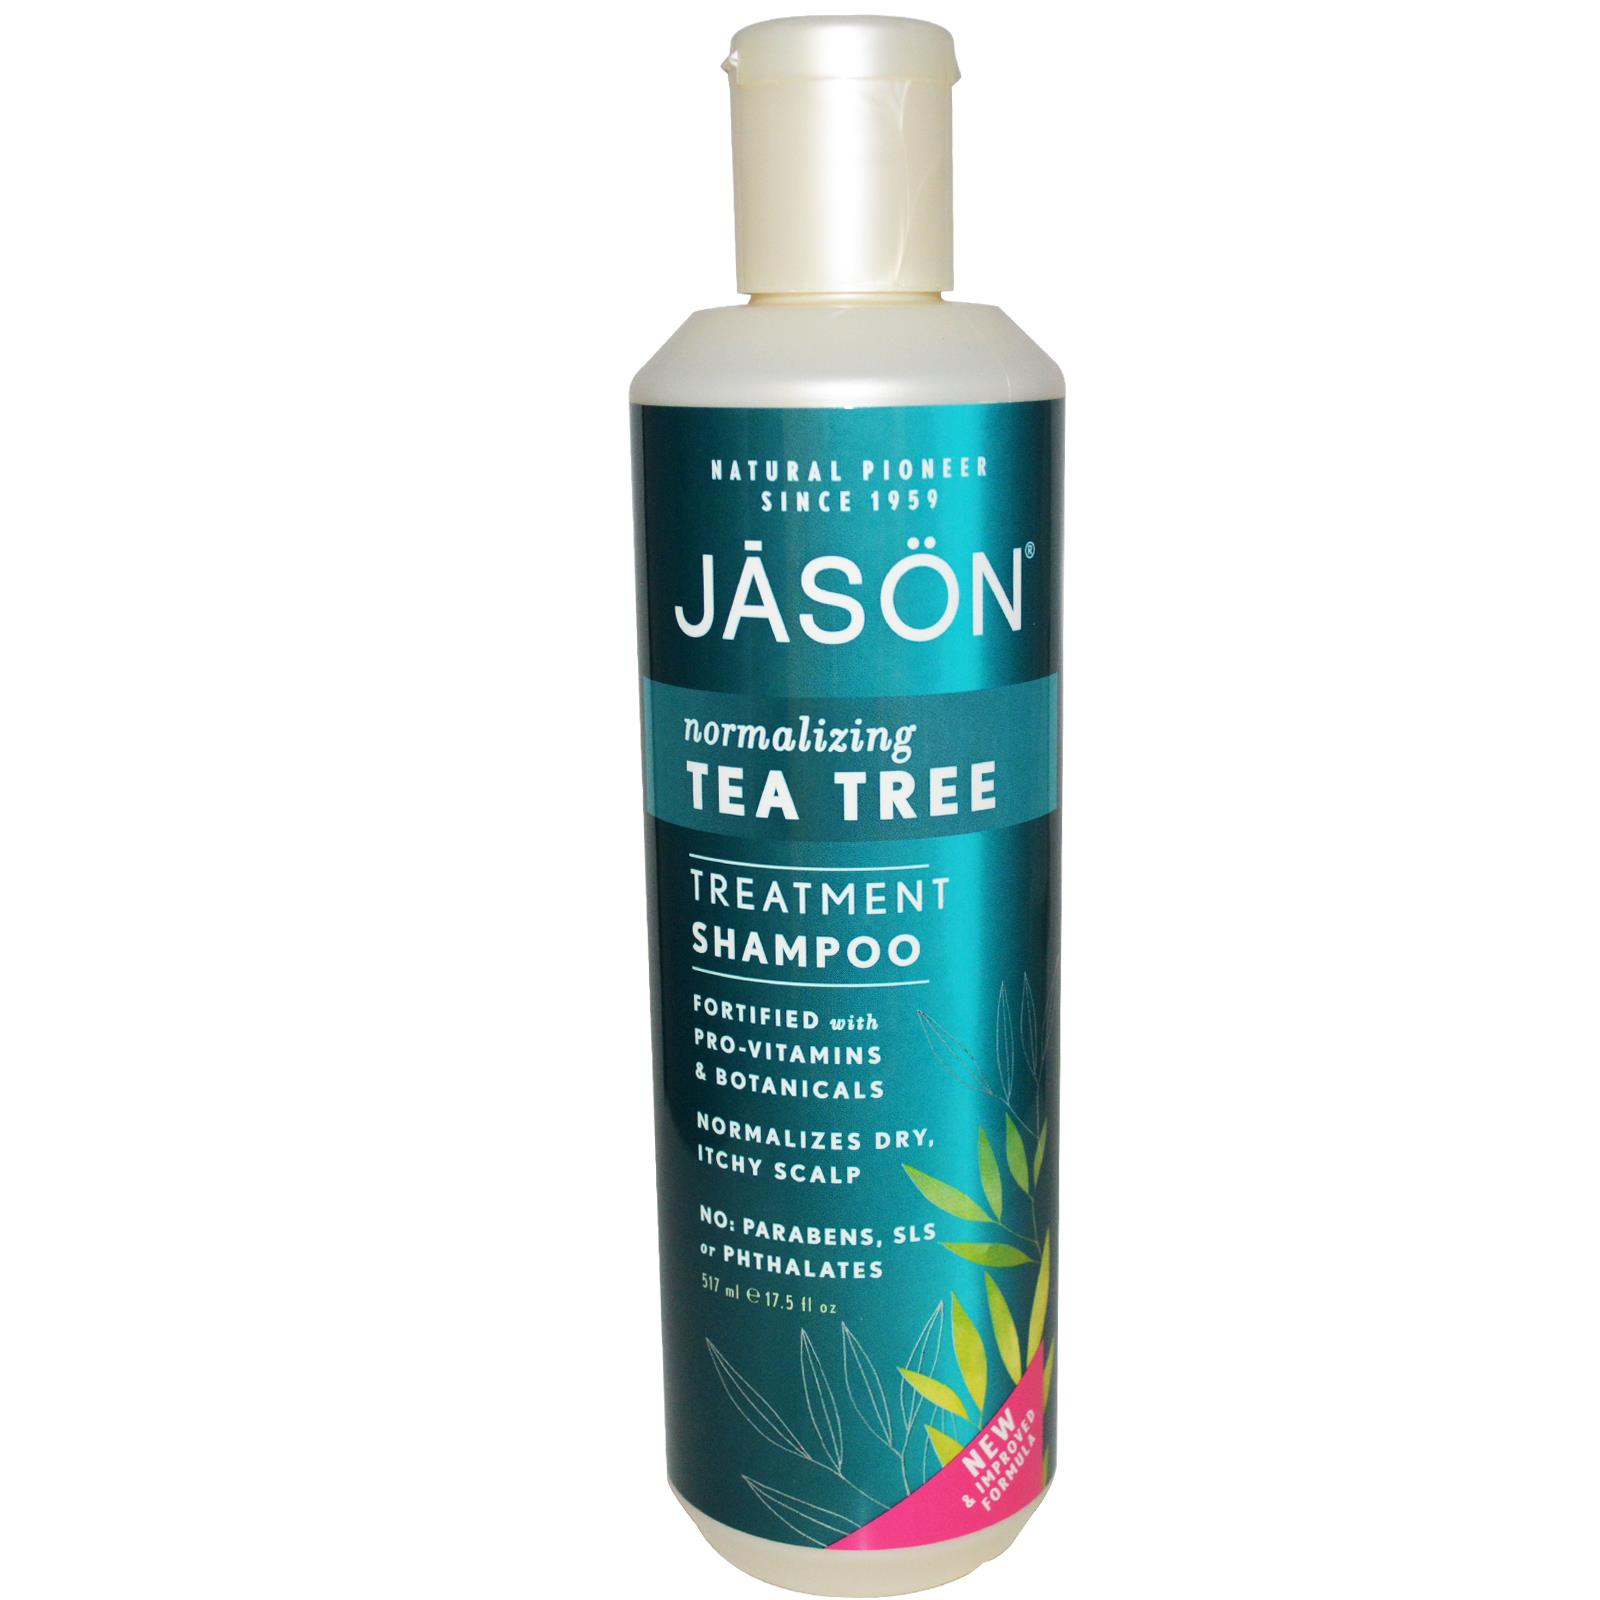 jason tea tree oil shampoo.jpg